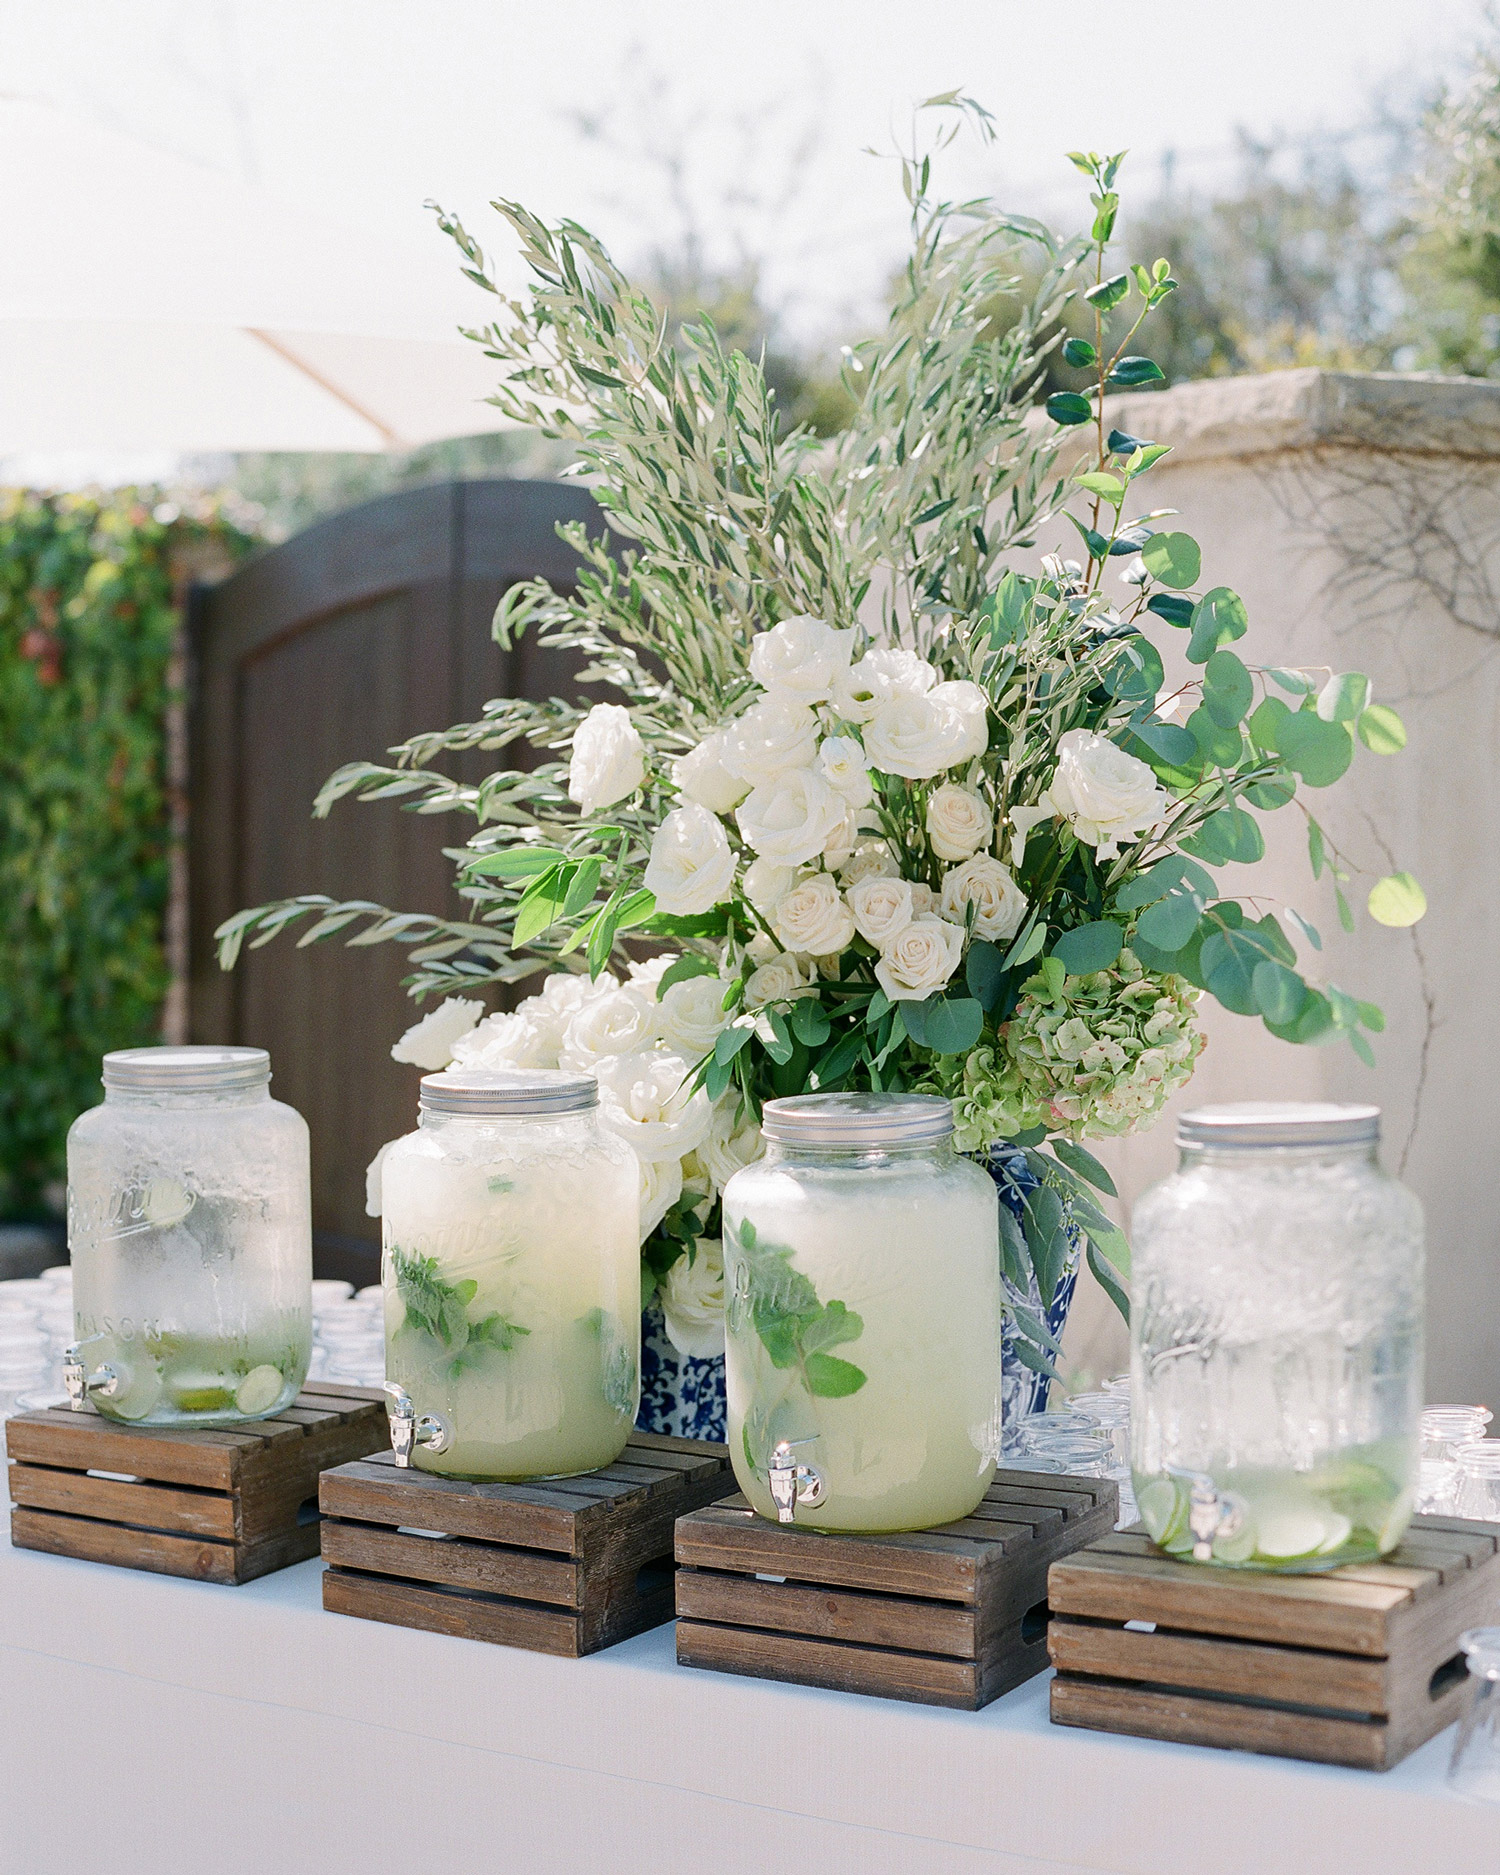 glass jugs of lemonade and water on wooden crates